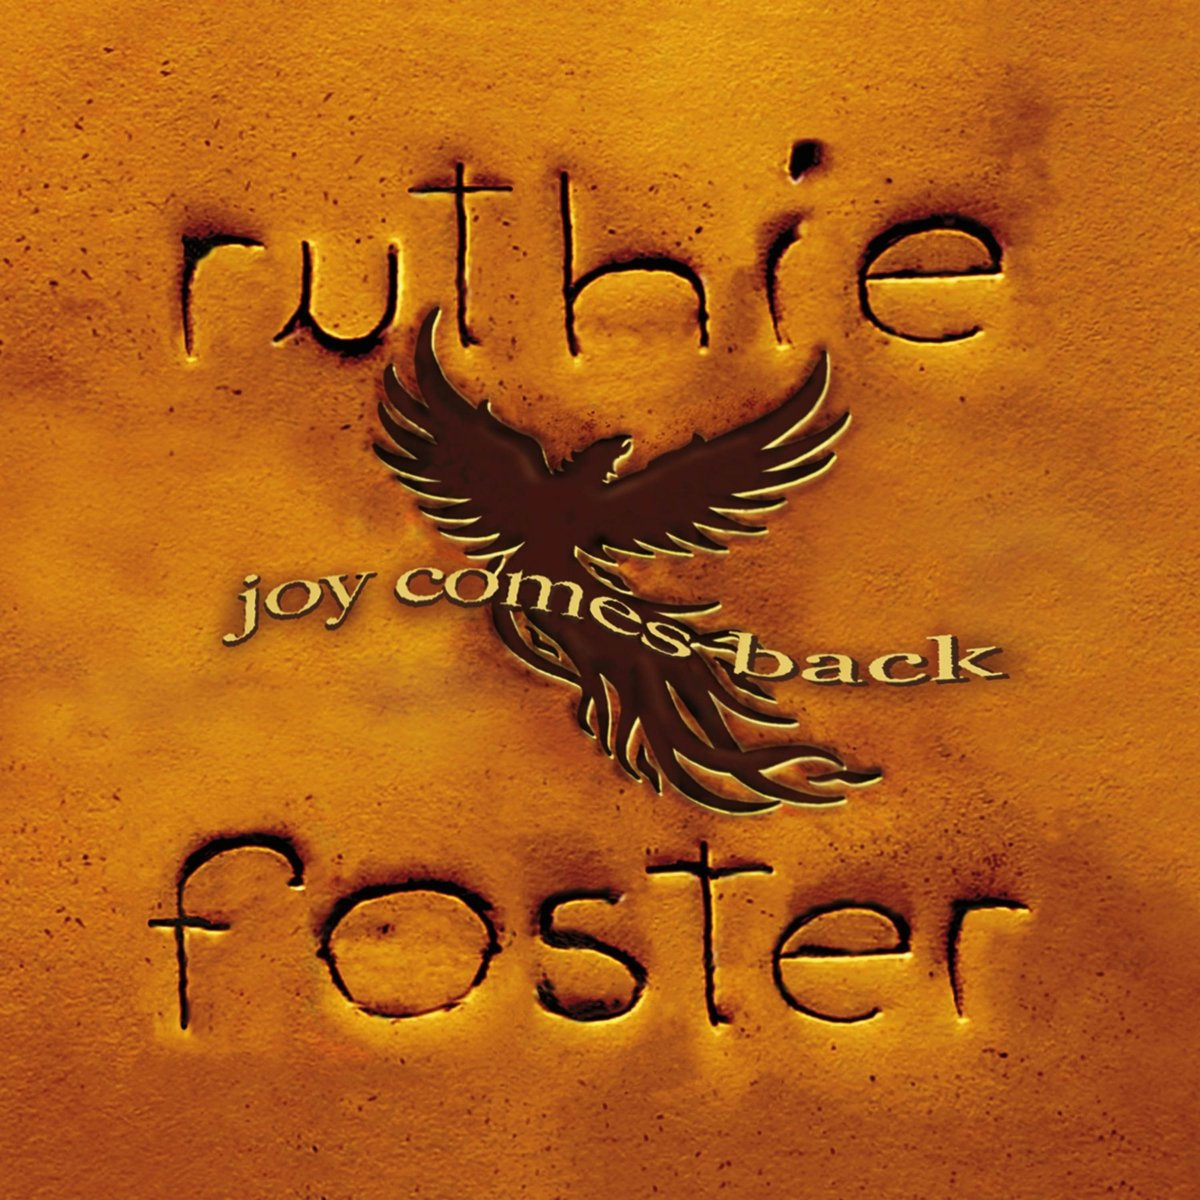 Ruthie Foster - Joy Comes Back (2017) [WEB FLAC] Download